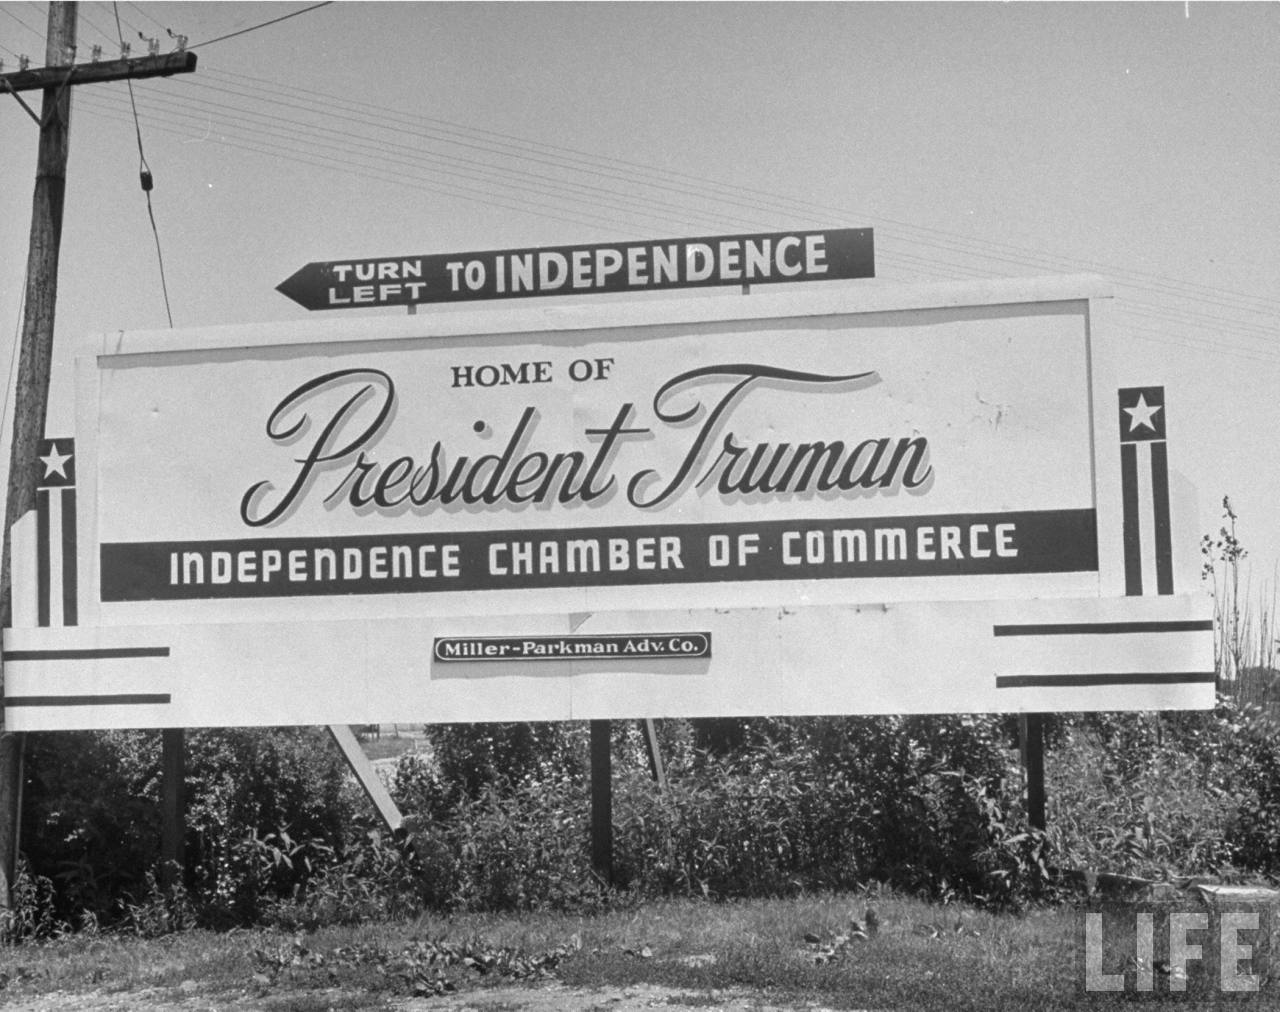 A welcoming sign to Independence Missouri, attracts tourists by advertising the towns significance with Harry S. Truman.